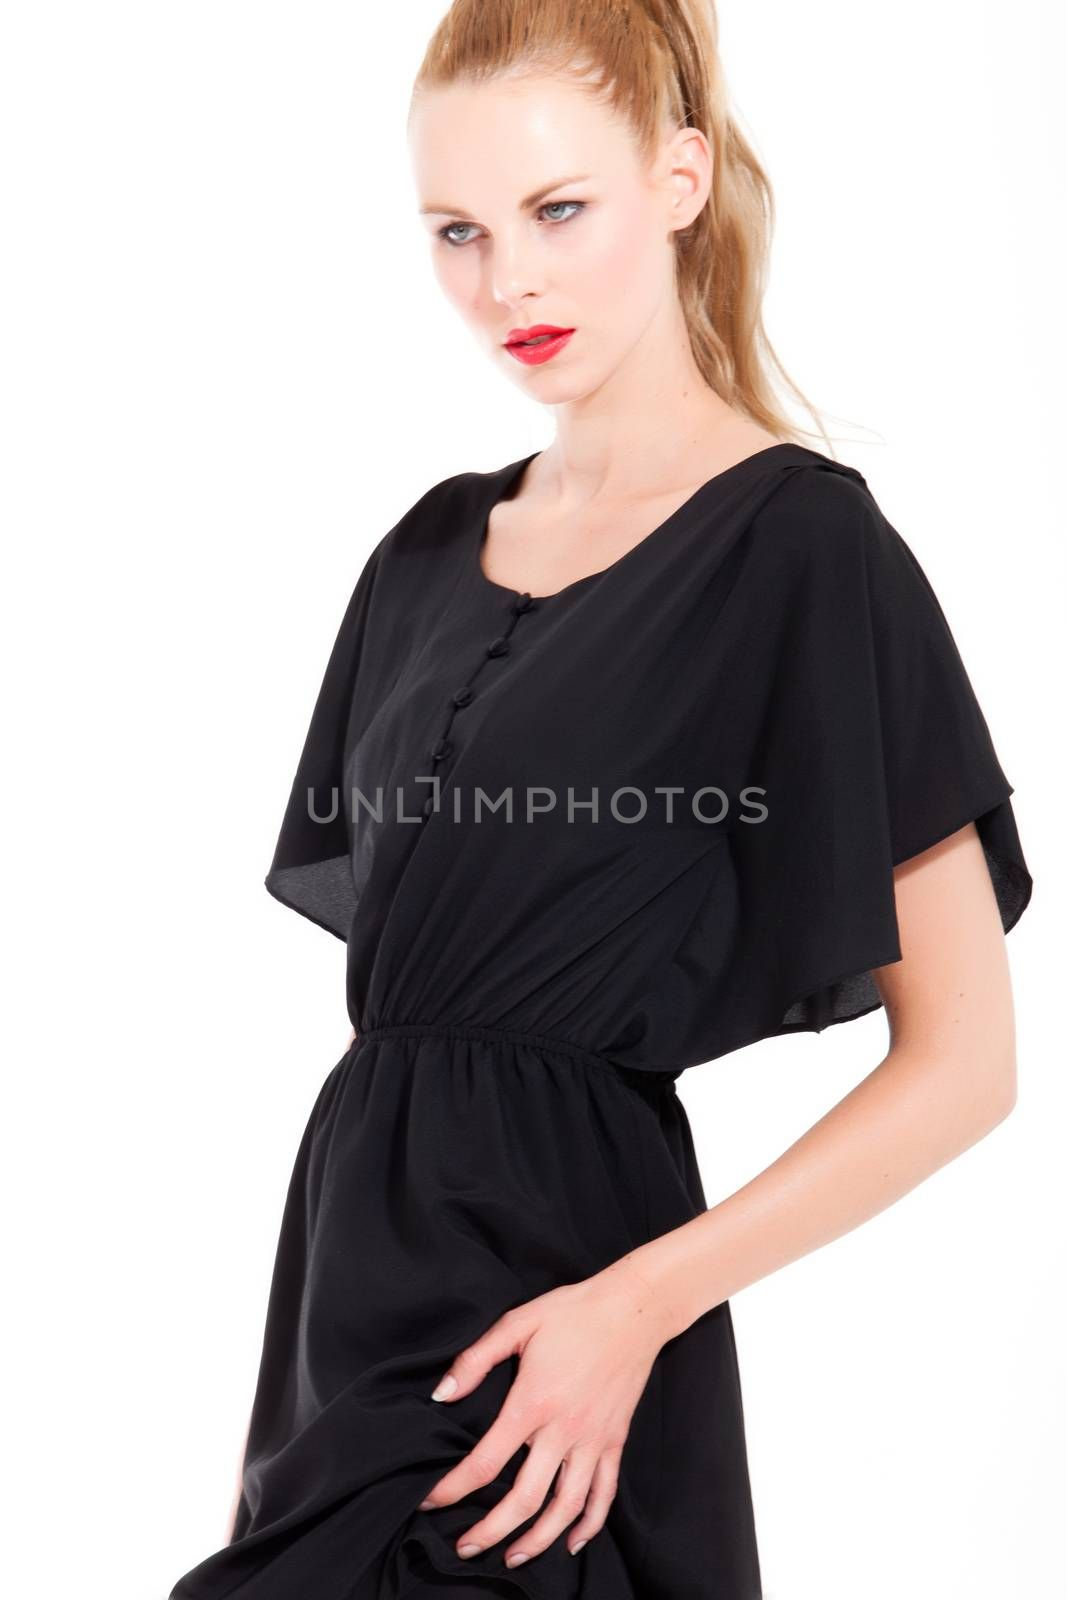 Beautifull young blond woman in the studio with a sexy black dress